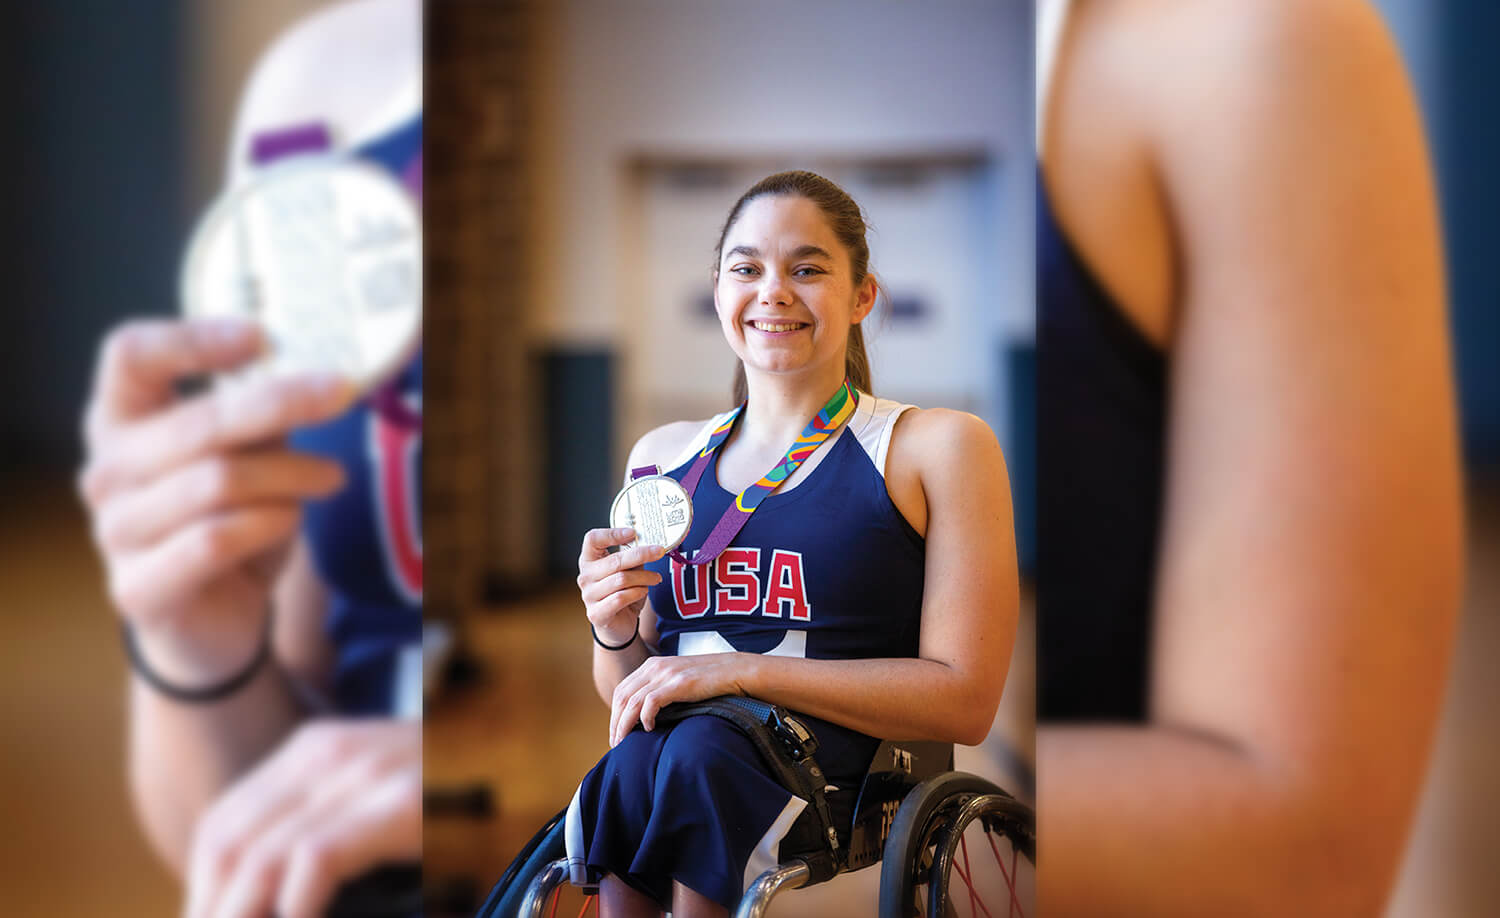 Kaitlyn Eaton shows off her silver medal from the 2019 Parapan American Games in Lima, Peru.